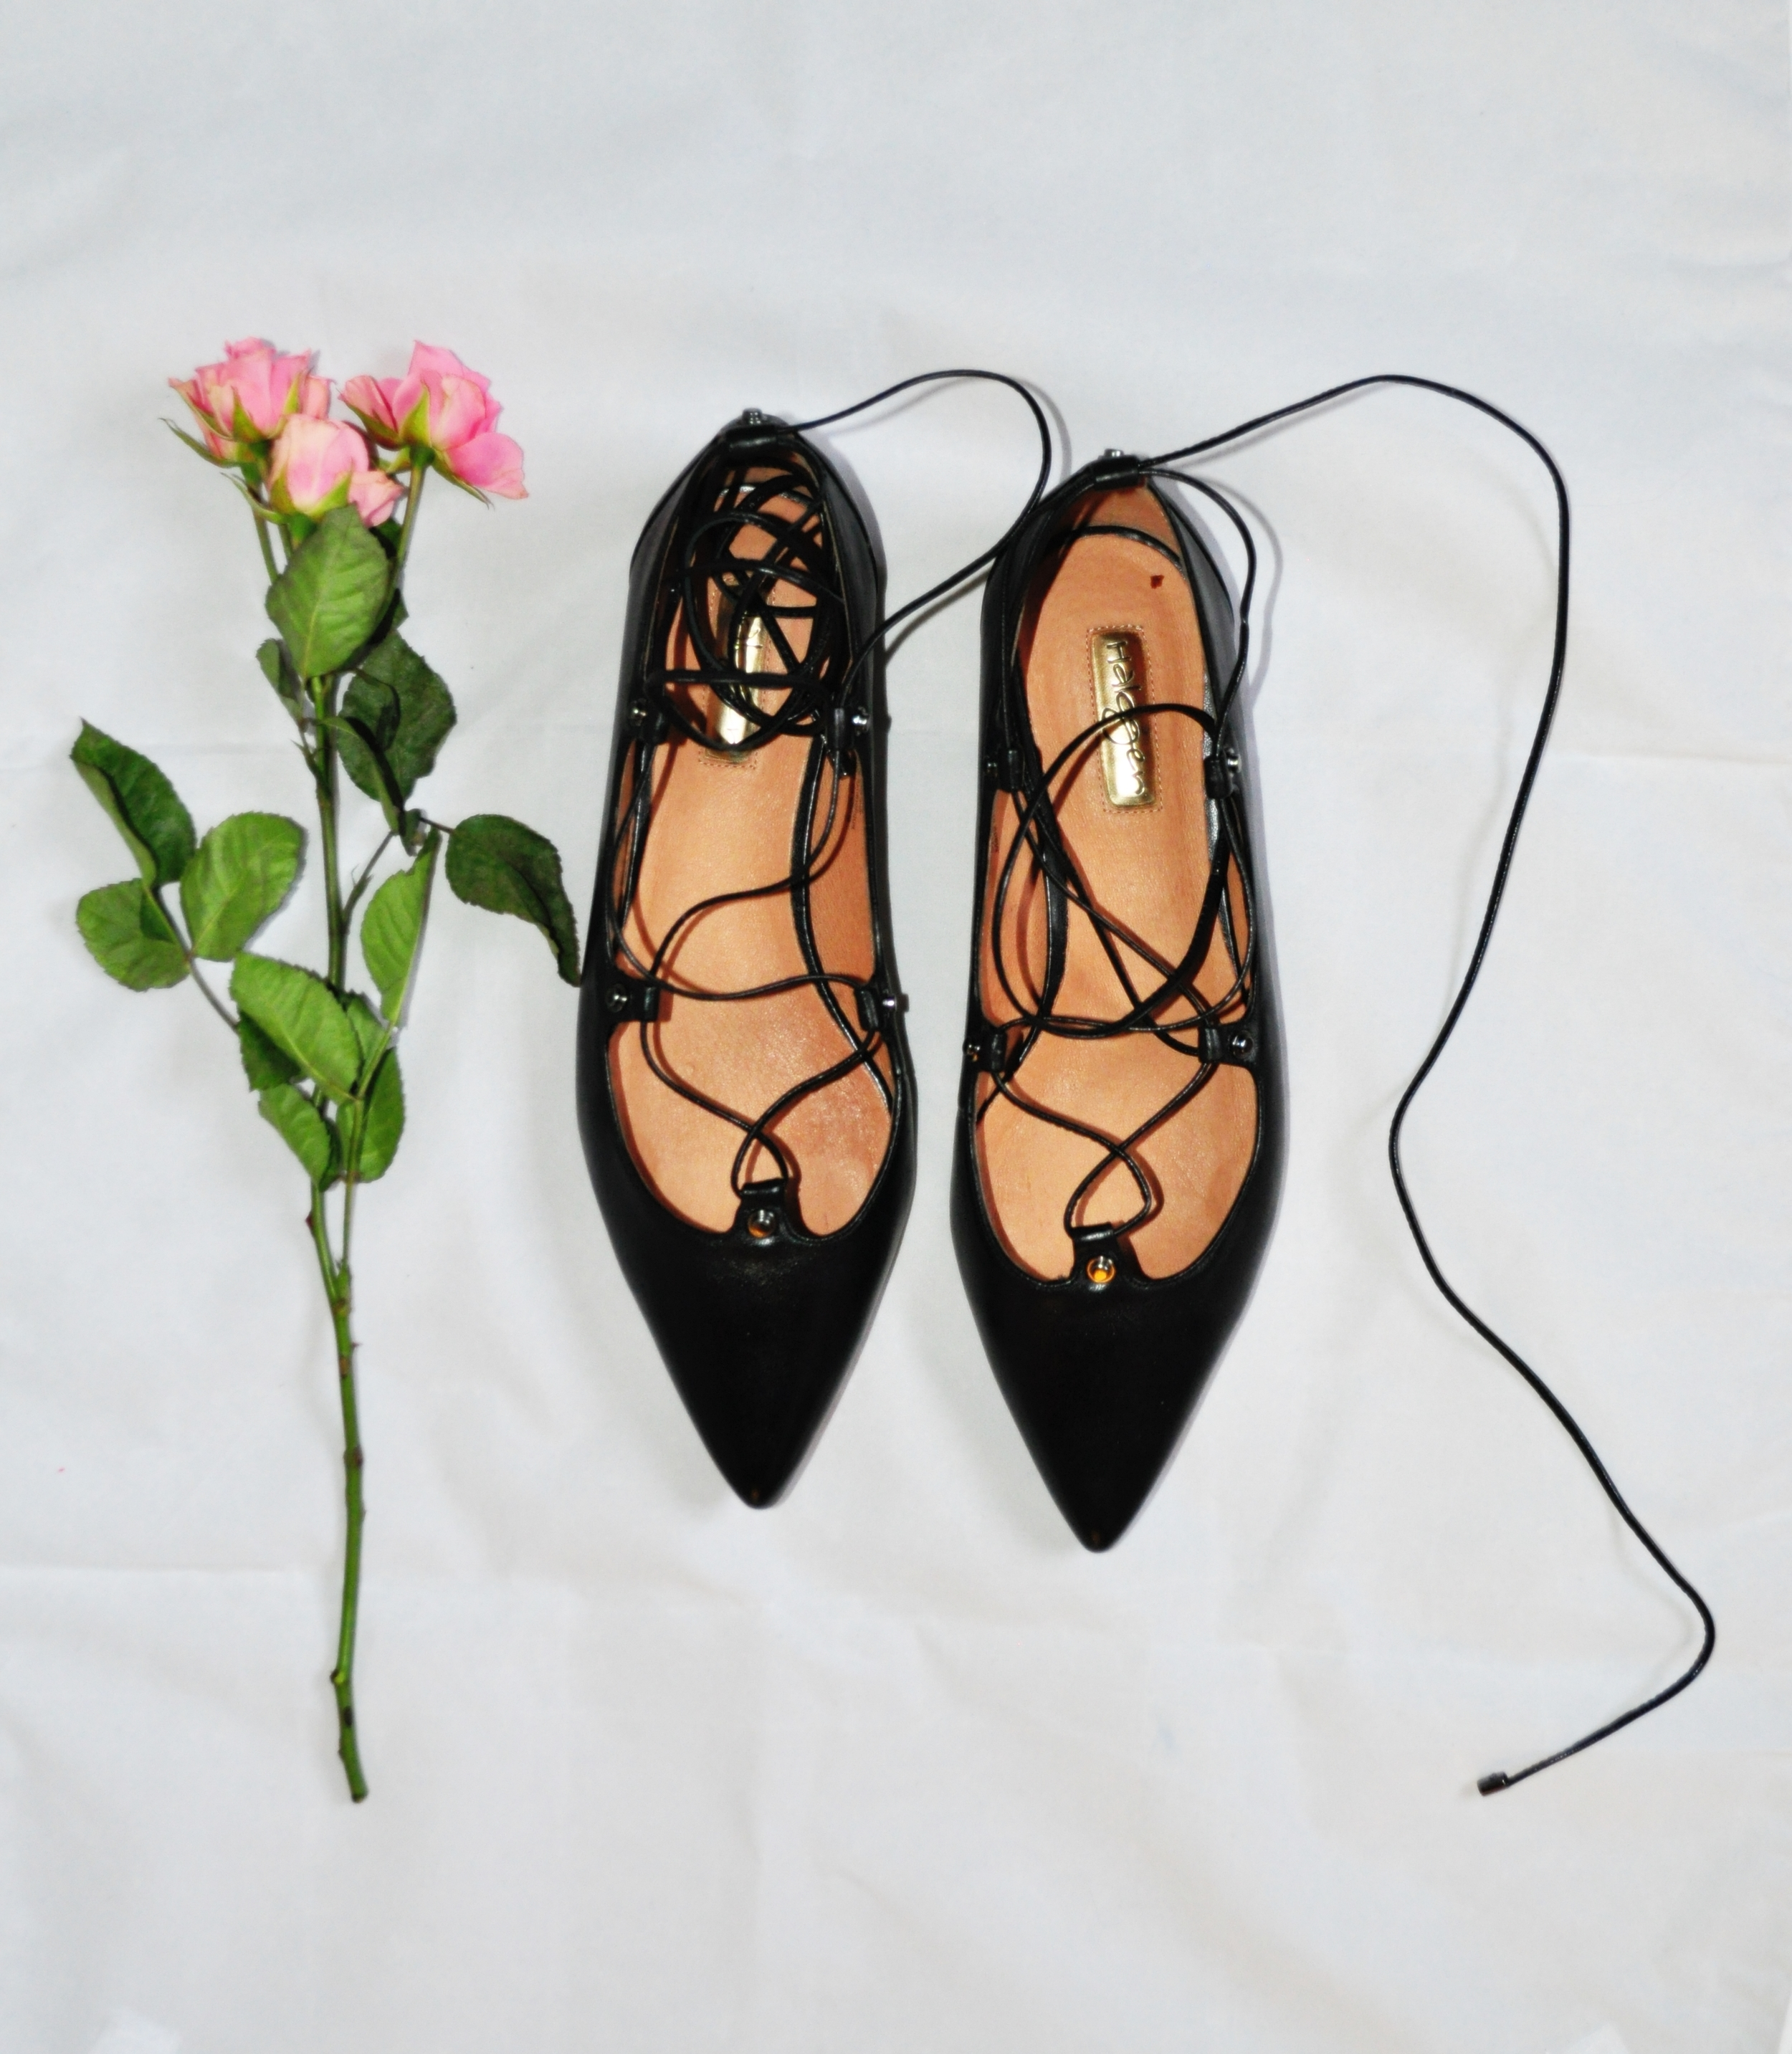 lace up flats pic 1.jpg